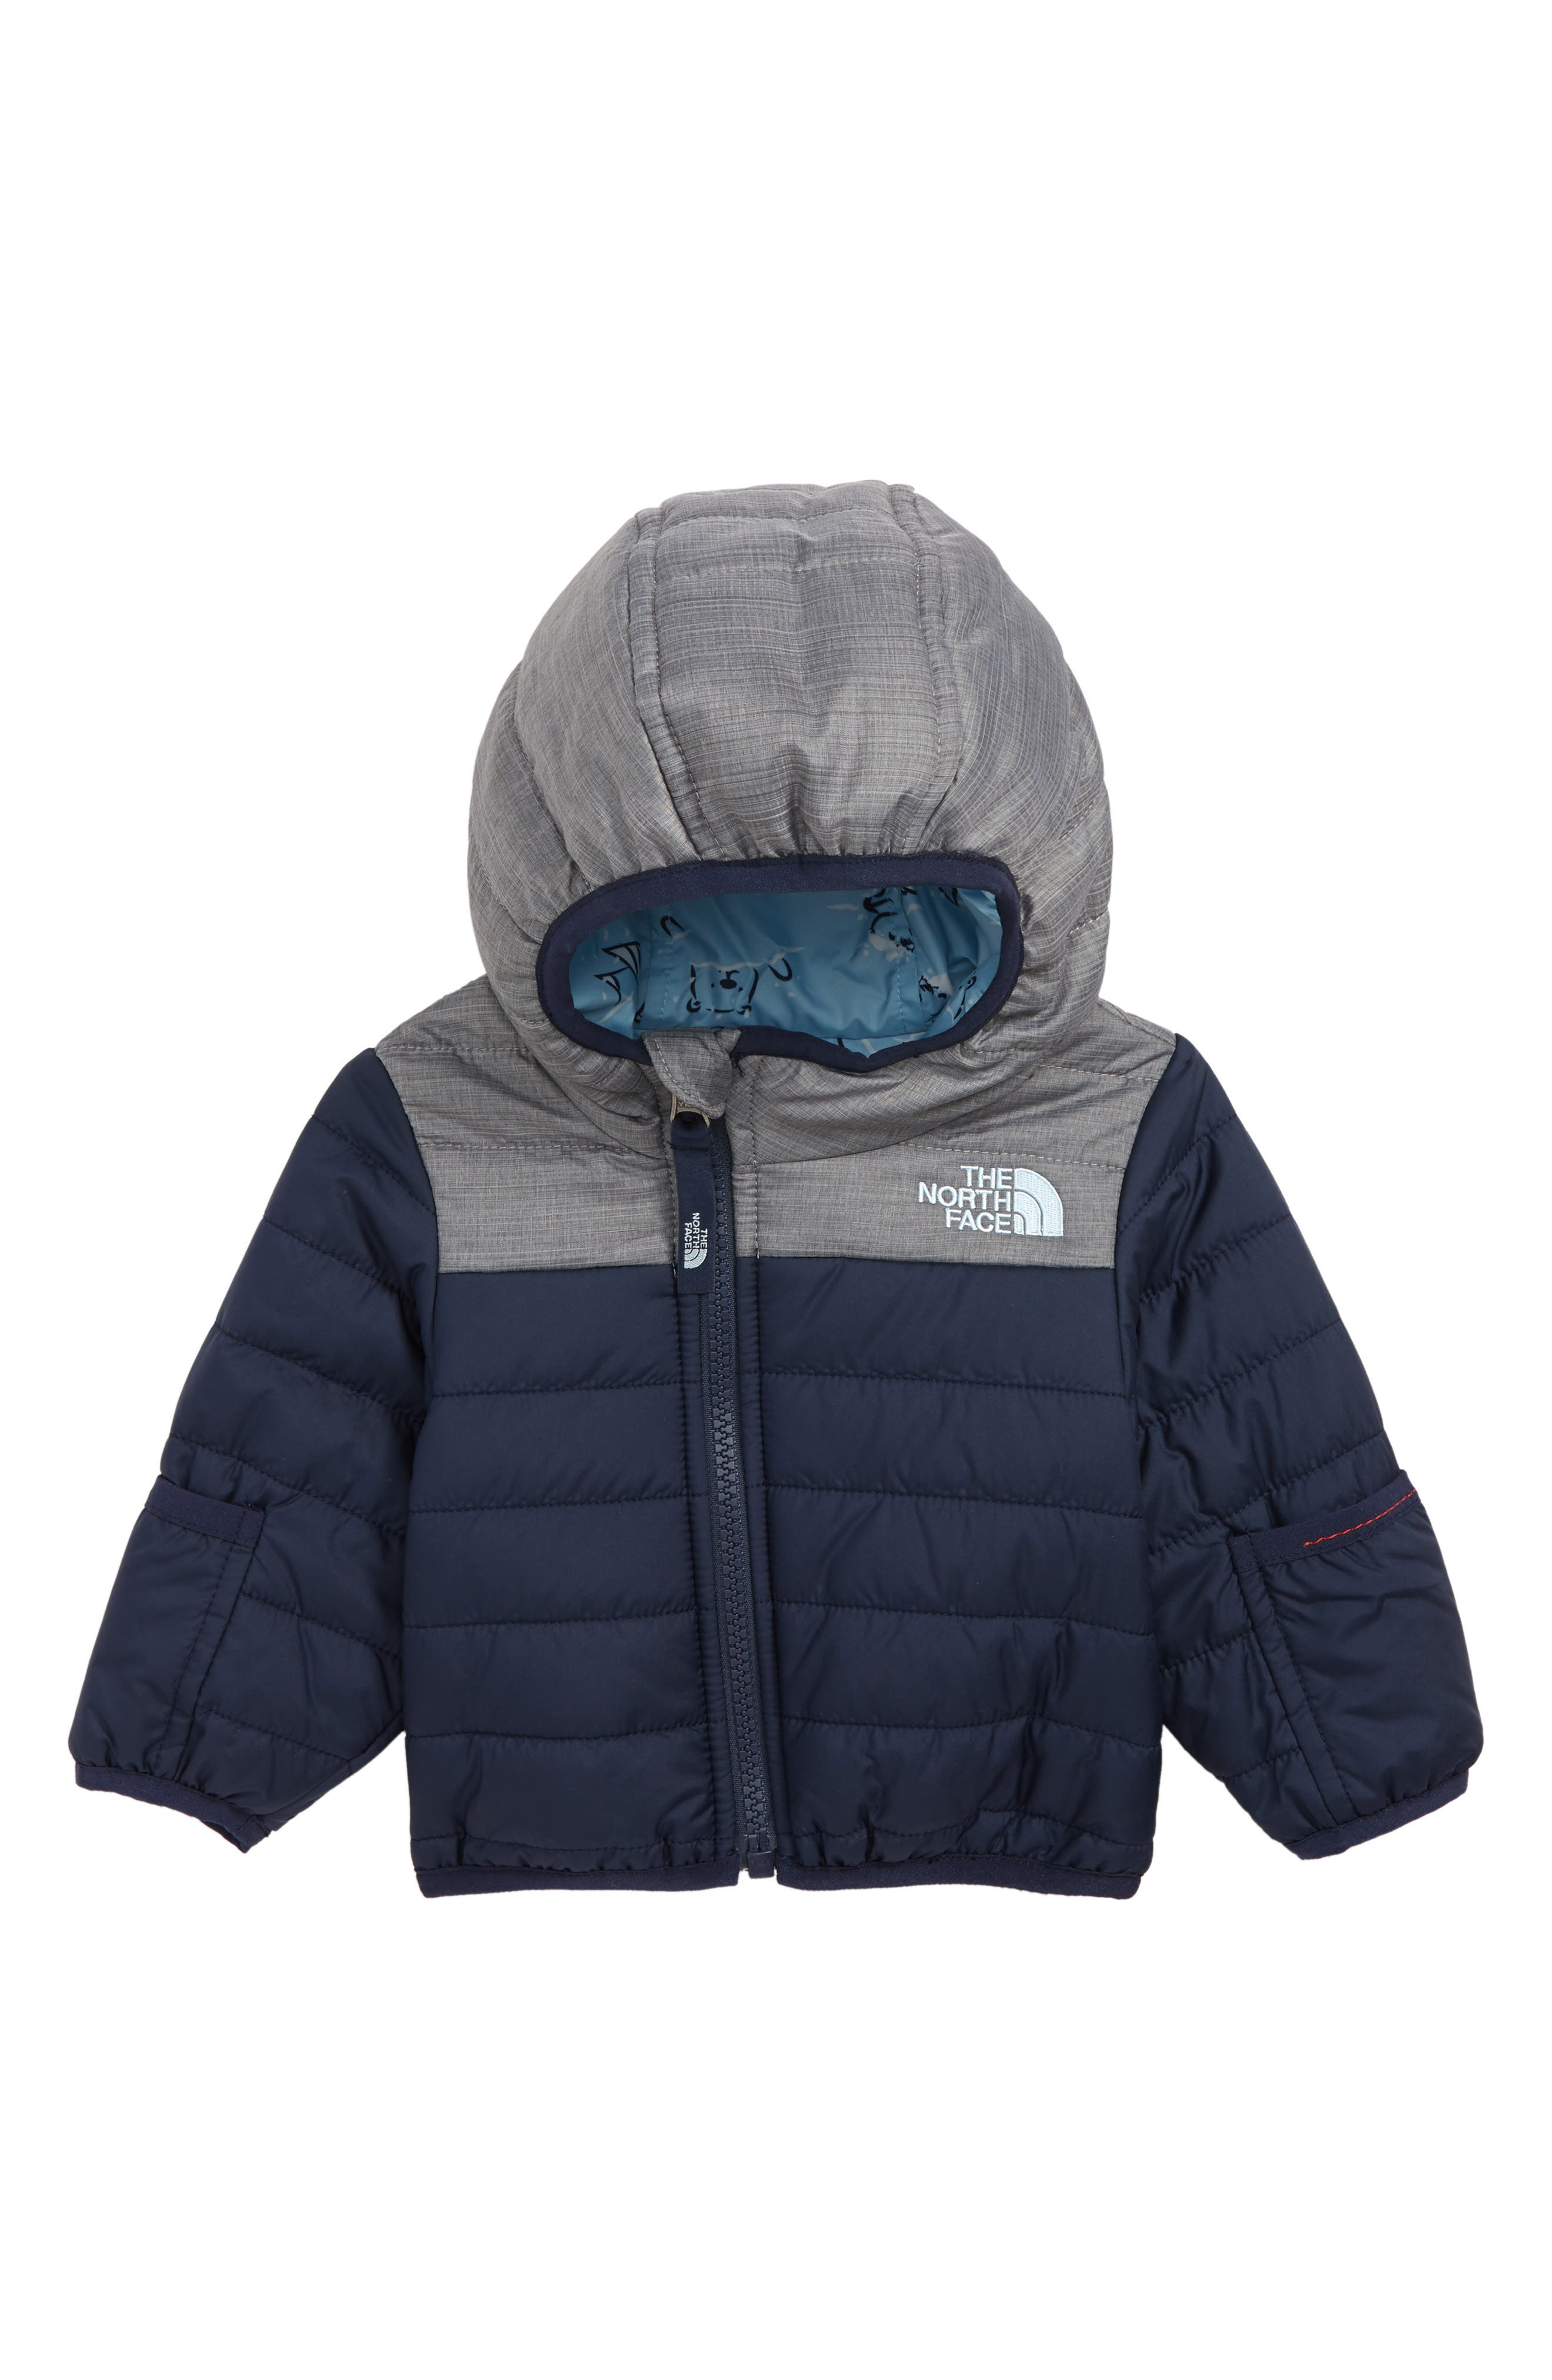 the north face nordstrom baby clothing shoes accessories nordstrom rh shop nordstrom com